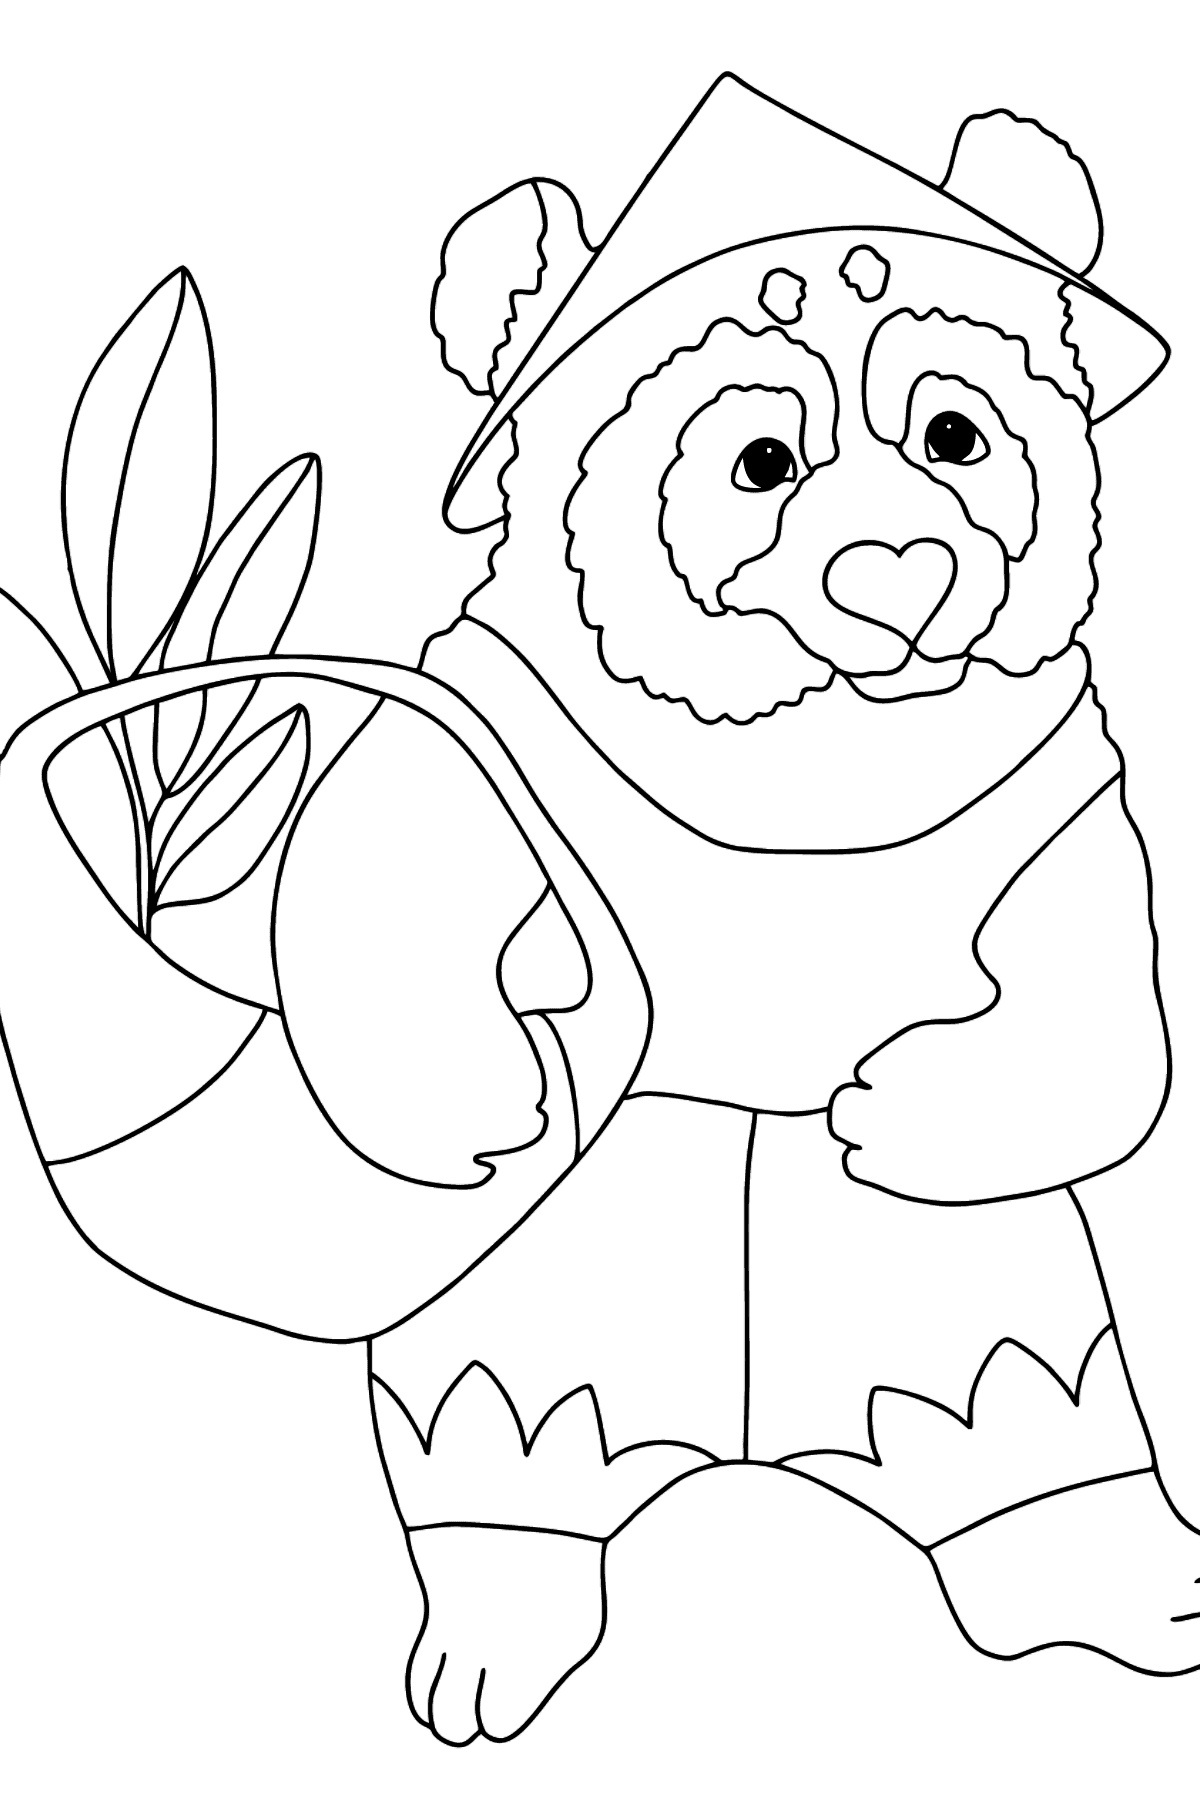 Coloring Page - A Panda with a Crop Basket - Coloring Pages for Kids